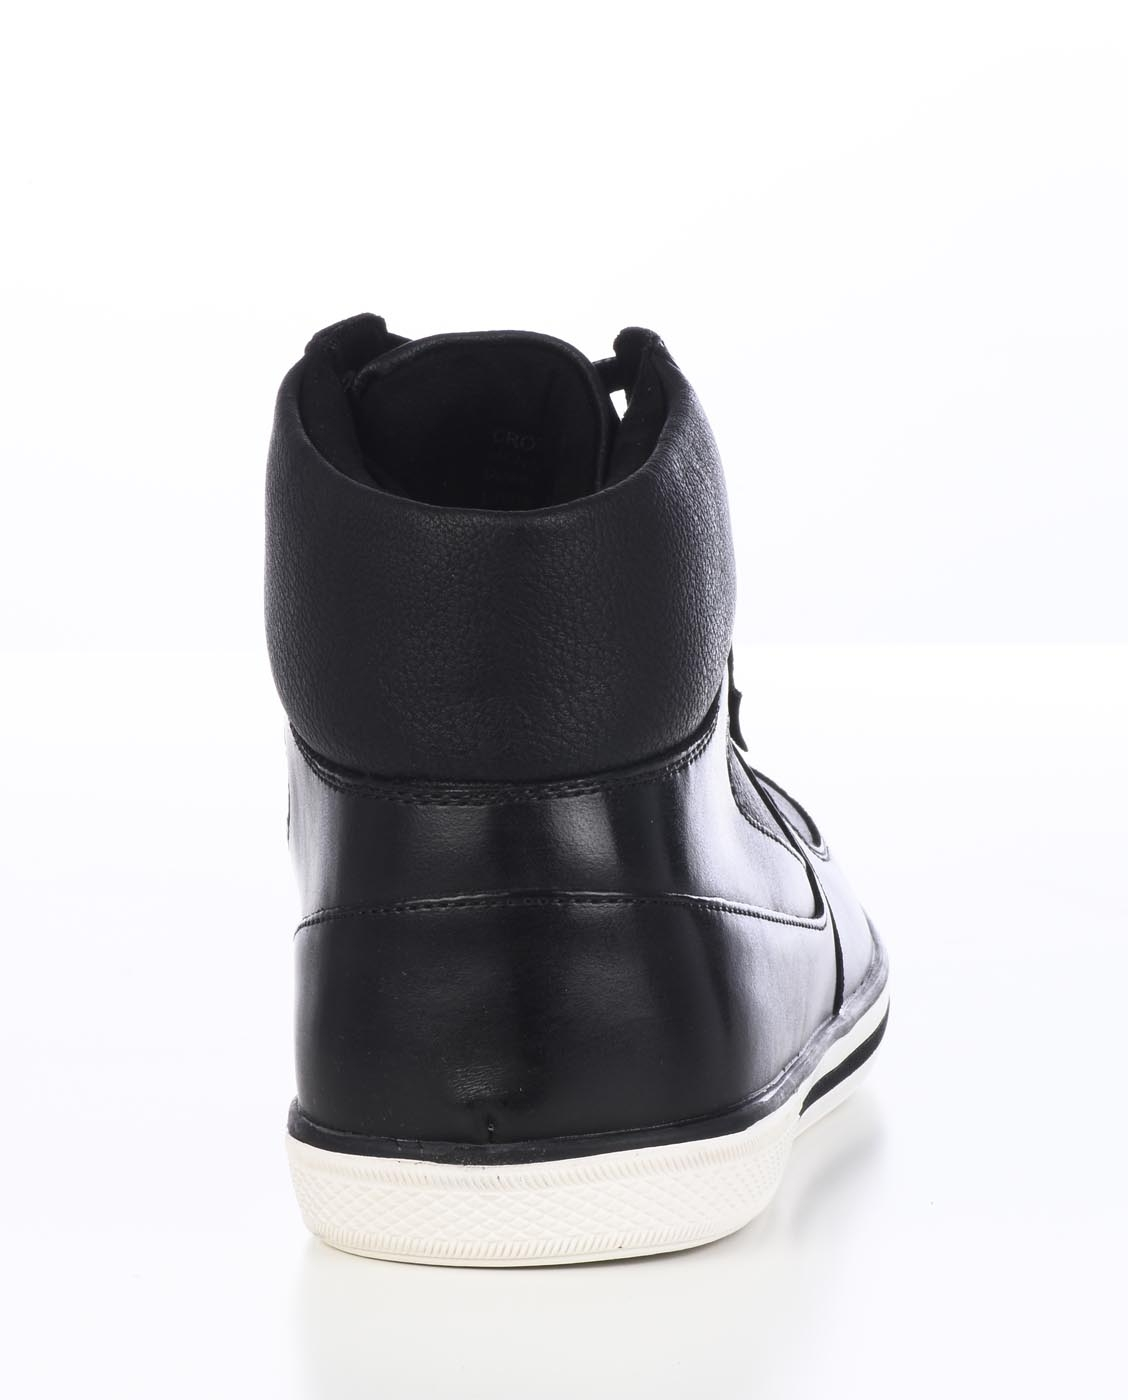 NEW-KENNETH-COLE-UNLISTED-MEN-039-S-CROWN-IT-FASHION-SNEAKER-SHOES-HI-TOP-JMH6SY018 thumbnail 7